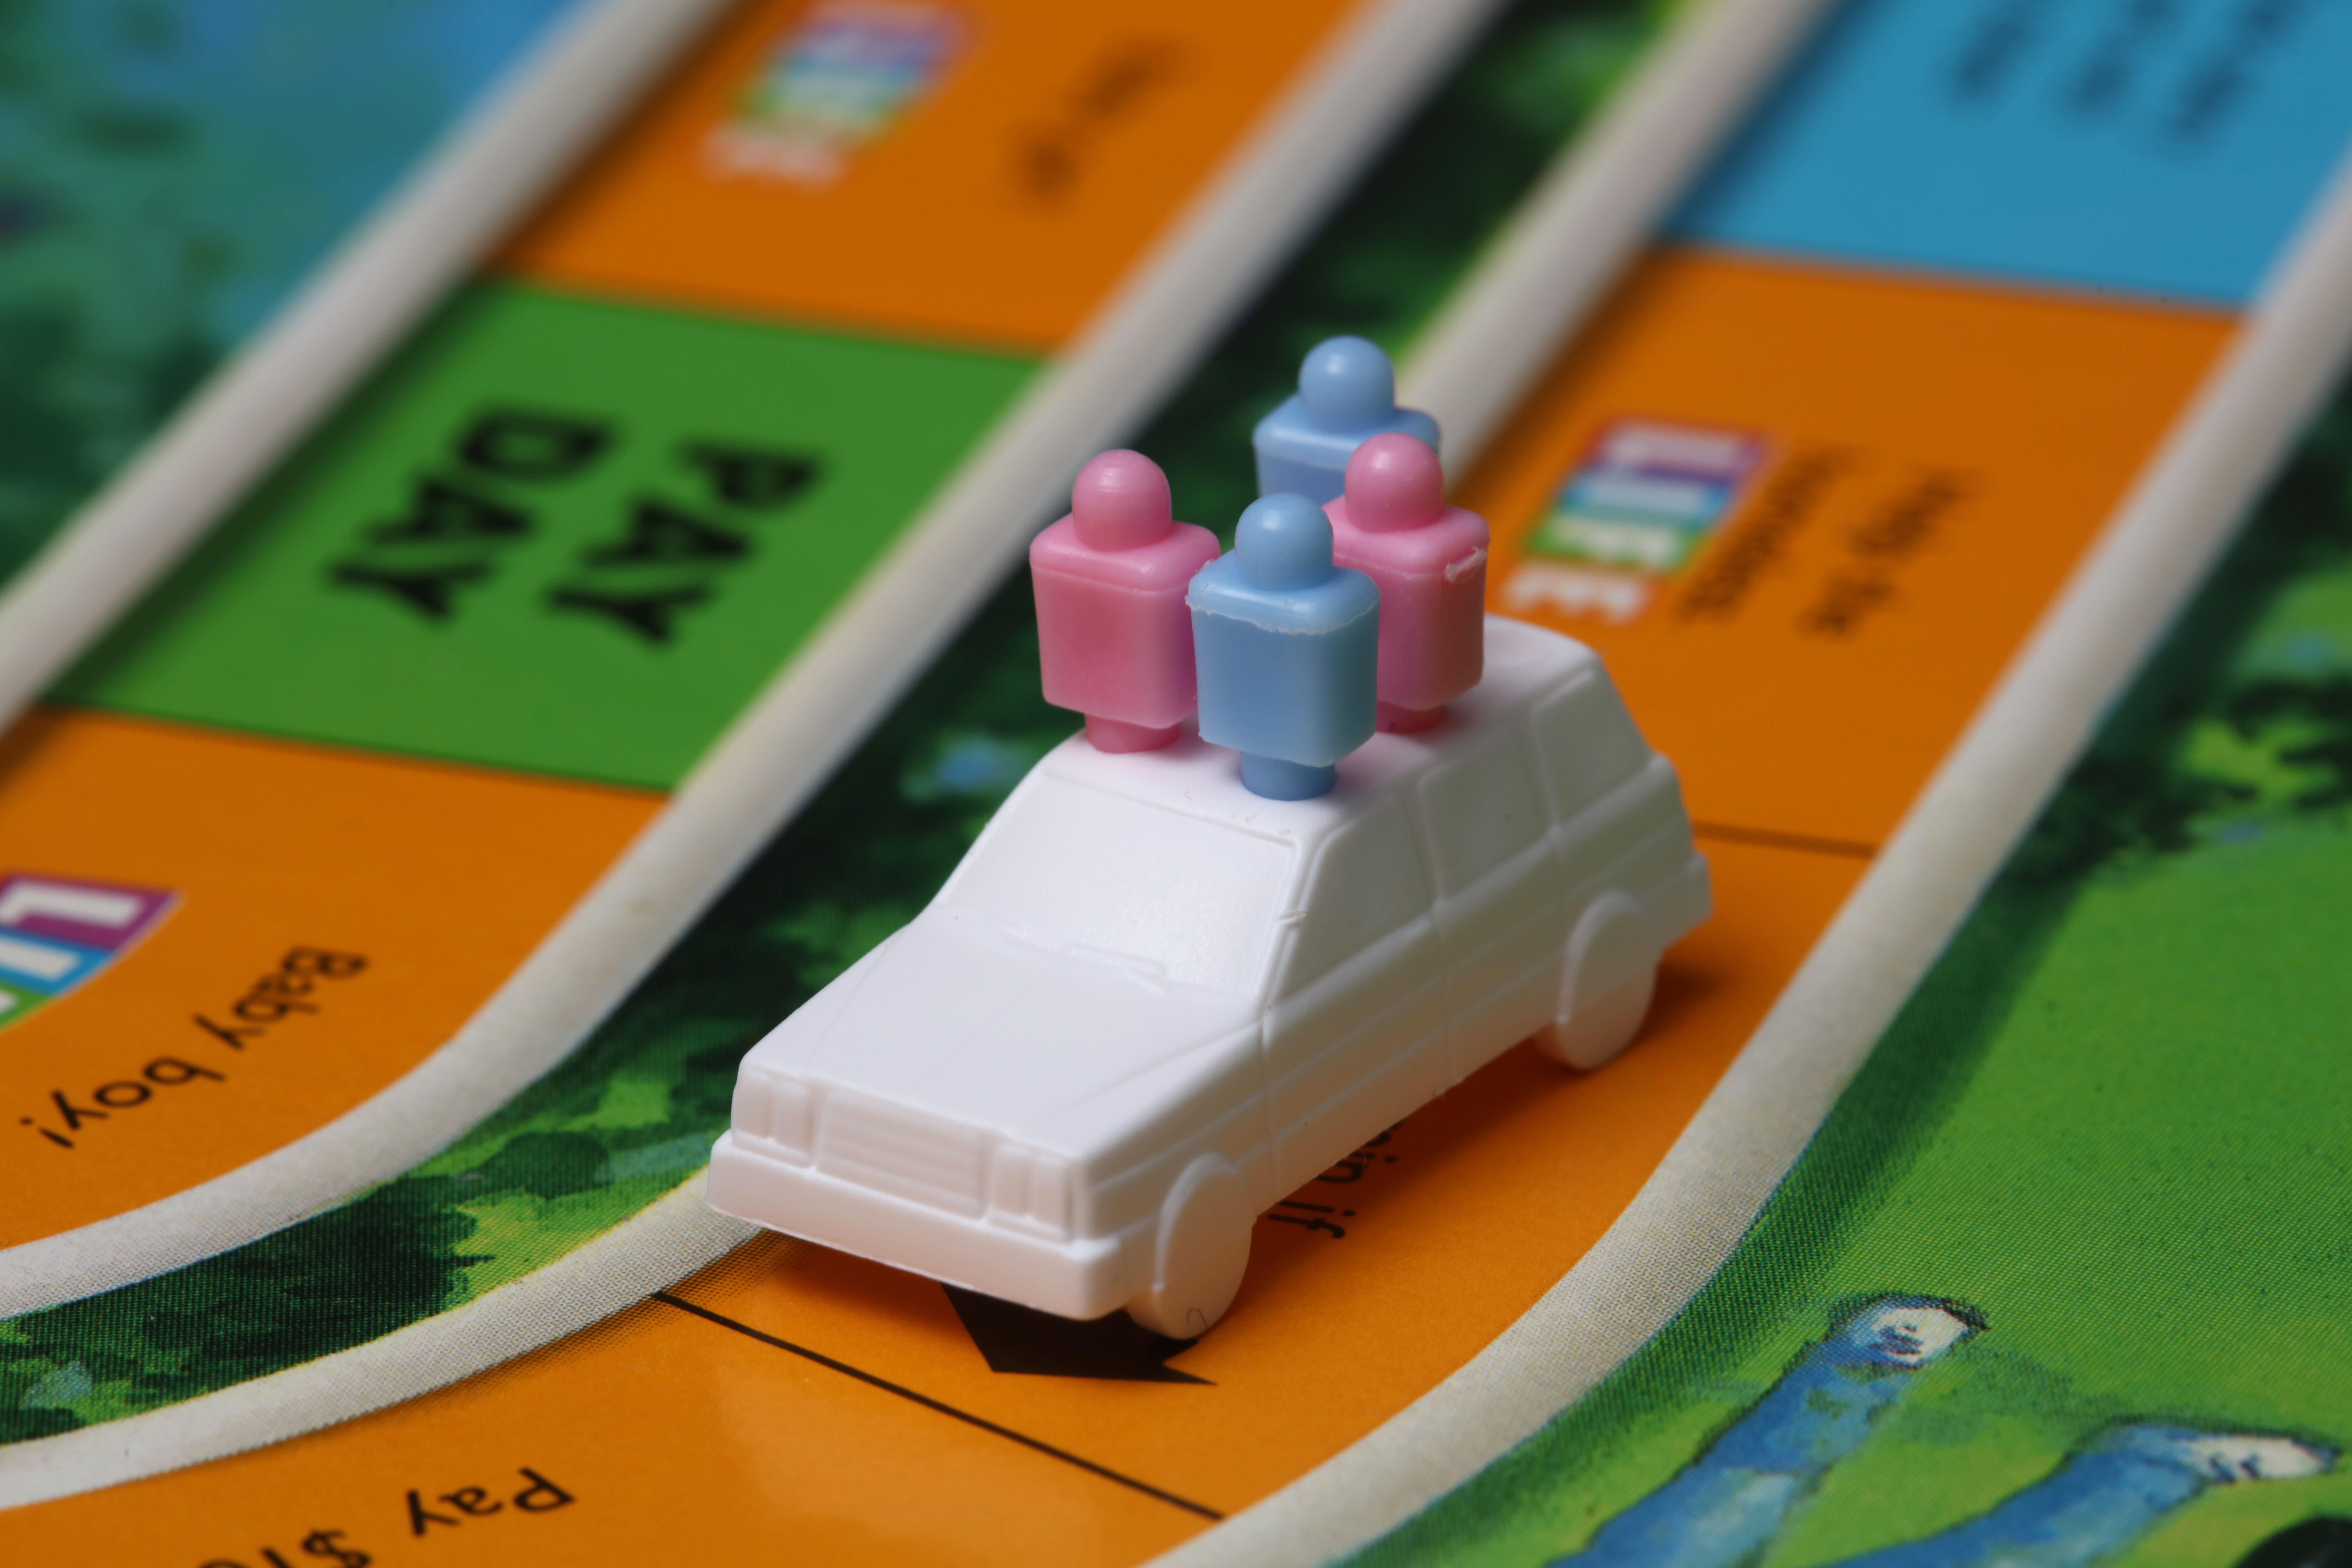 A car game piece on a game board carrying two pink people and two blue people.